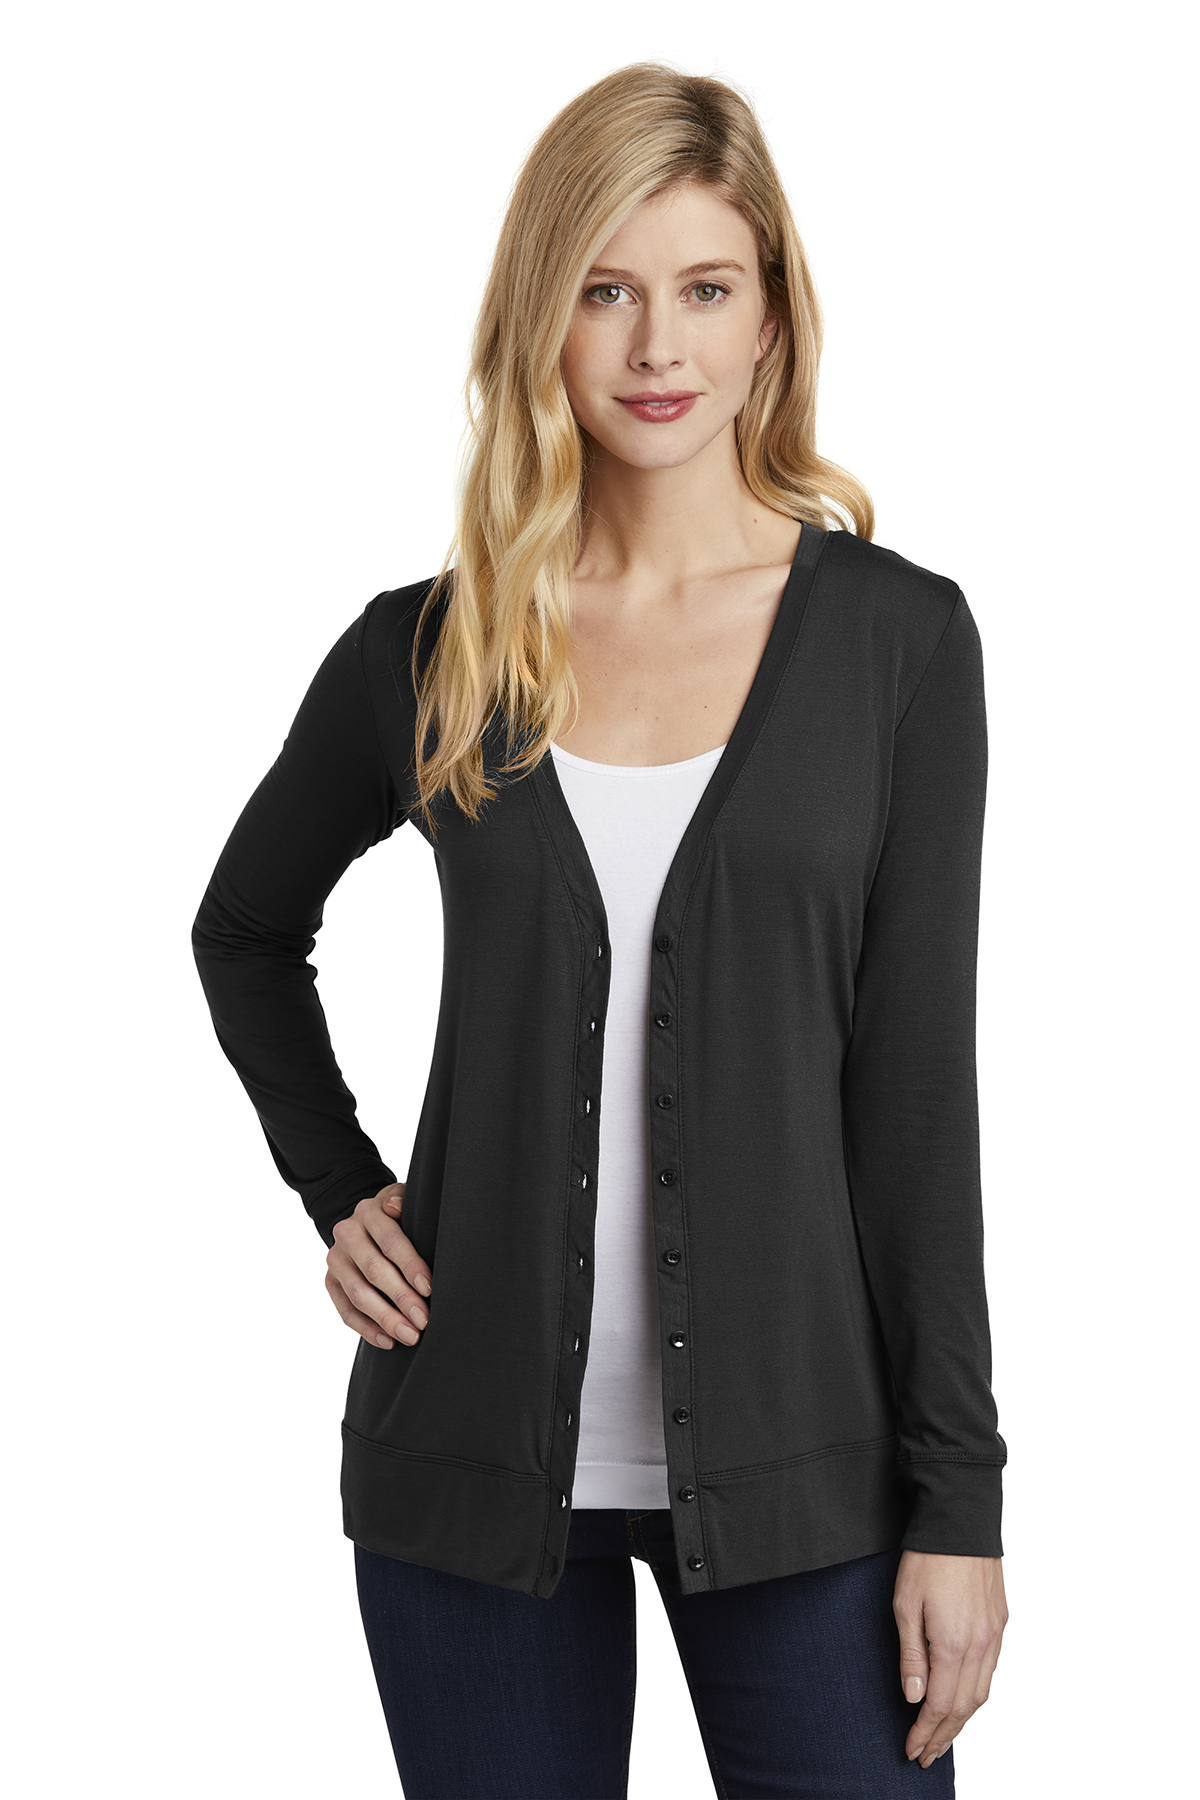 cd6c4e7ecd2e Port Authority® Ladies Concept Cardigan | Sweaters | Polos/Knits ...